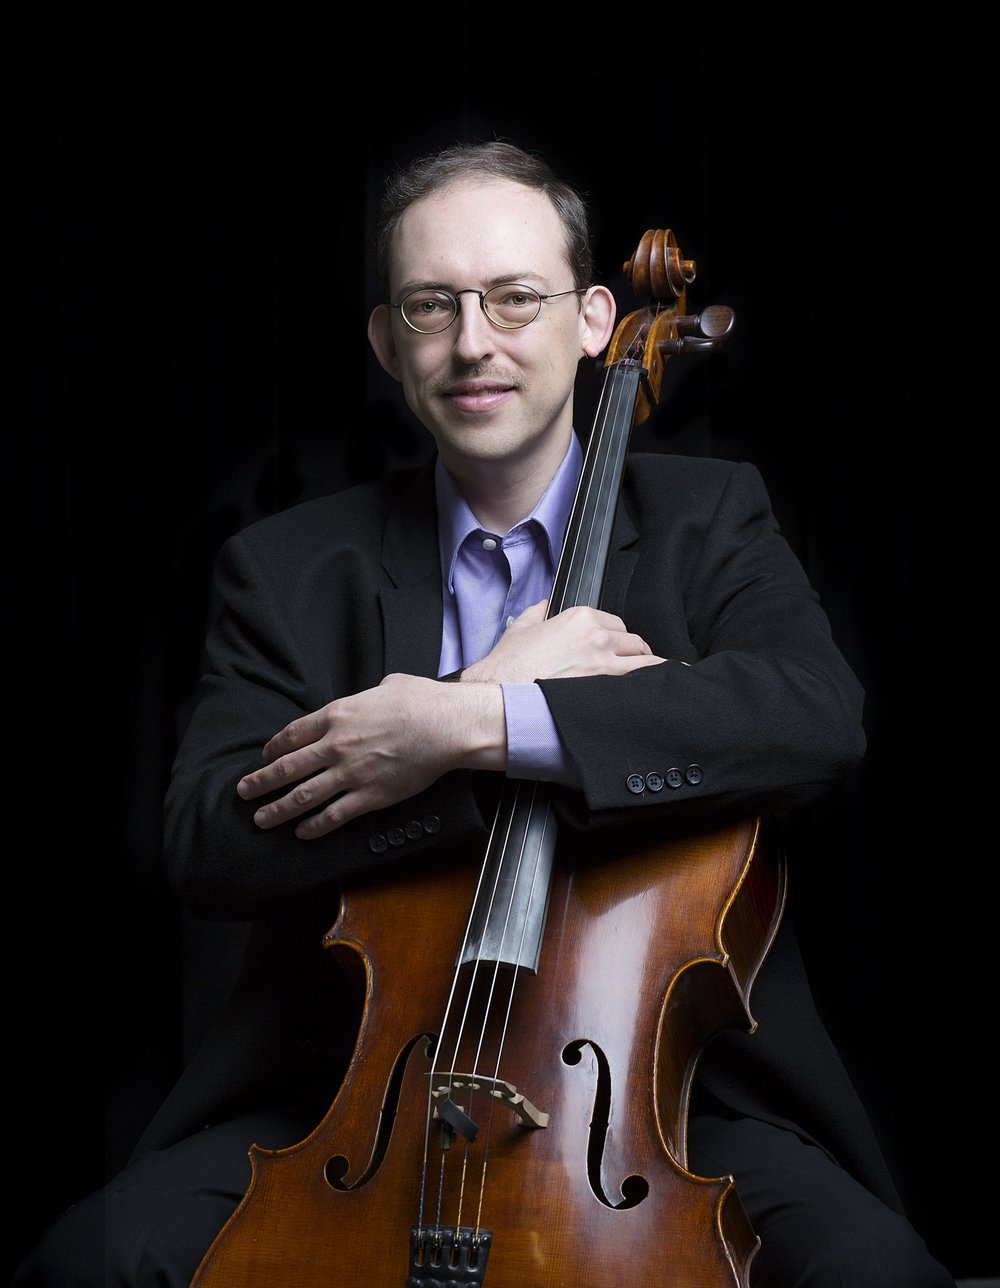 Igor Zubkovksy - Cello